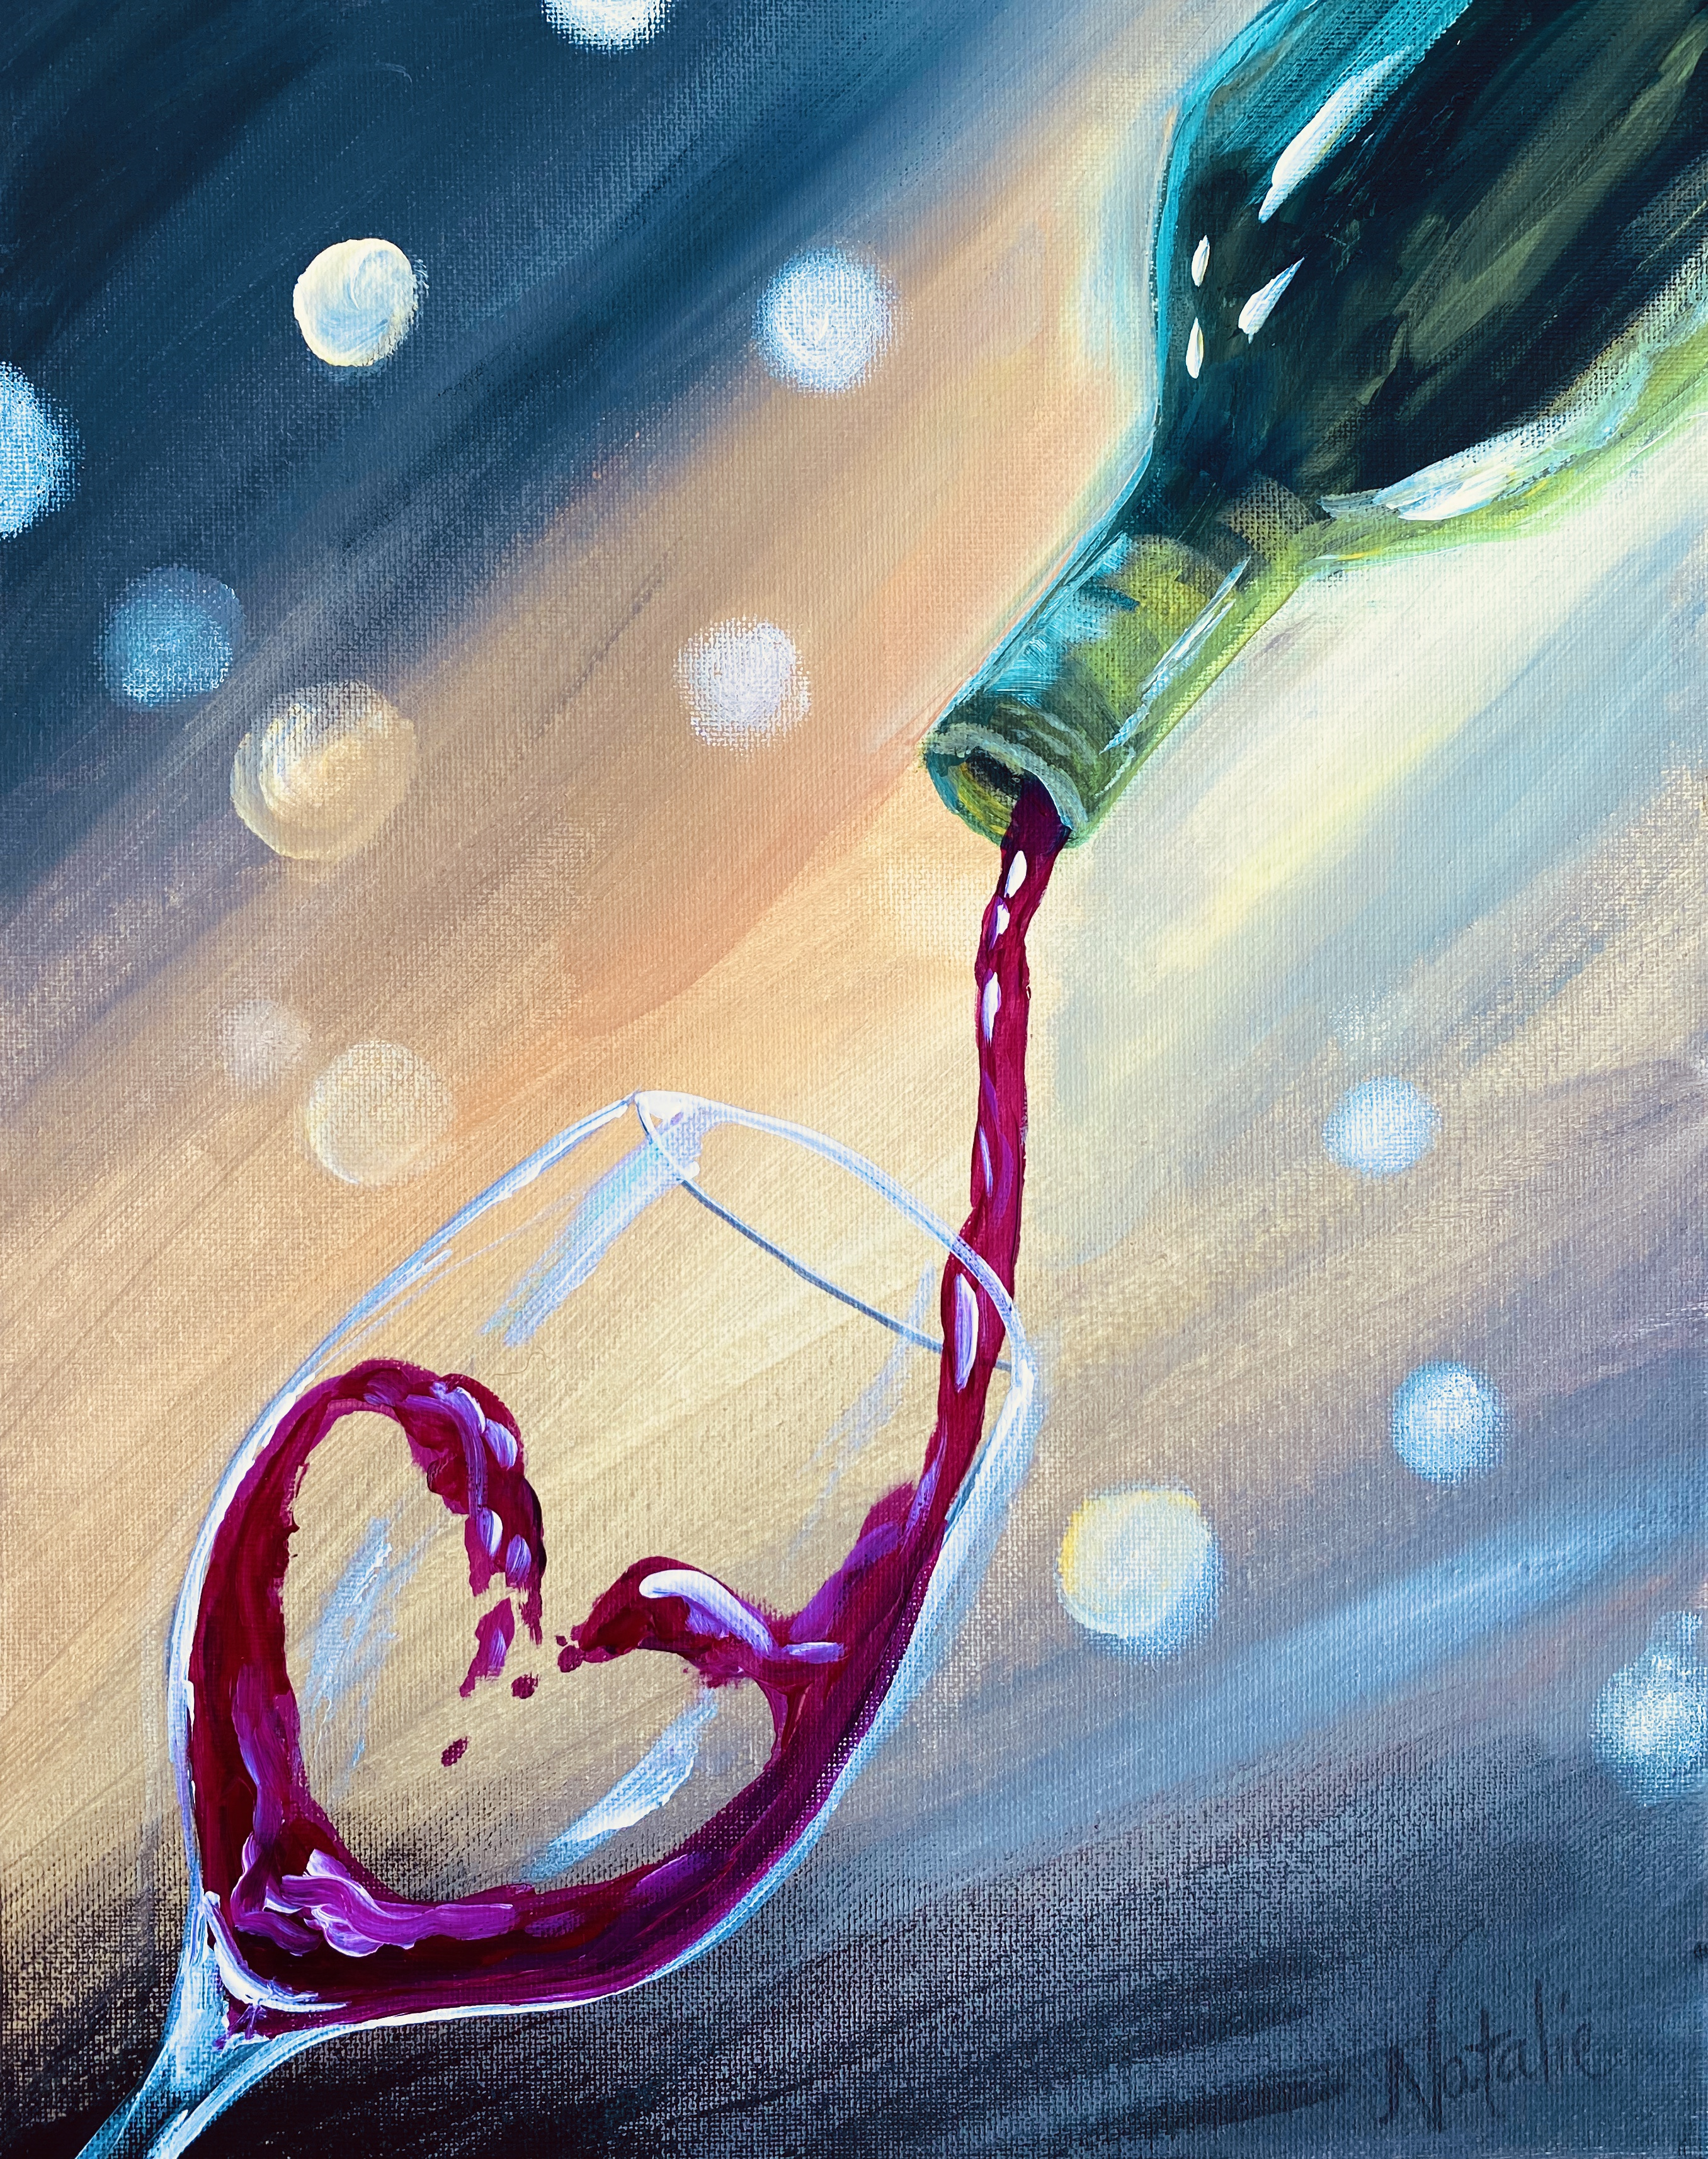 Pour on the Love